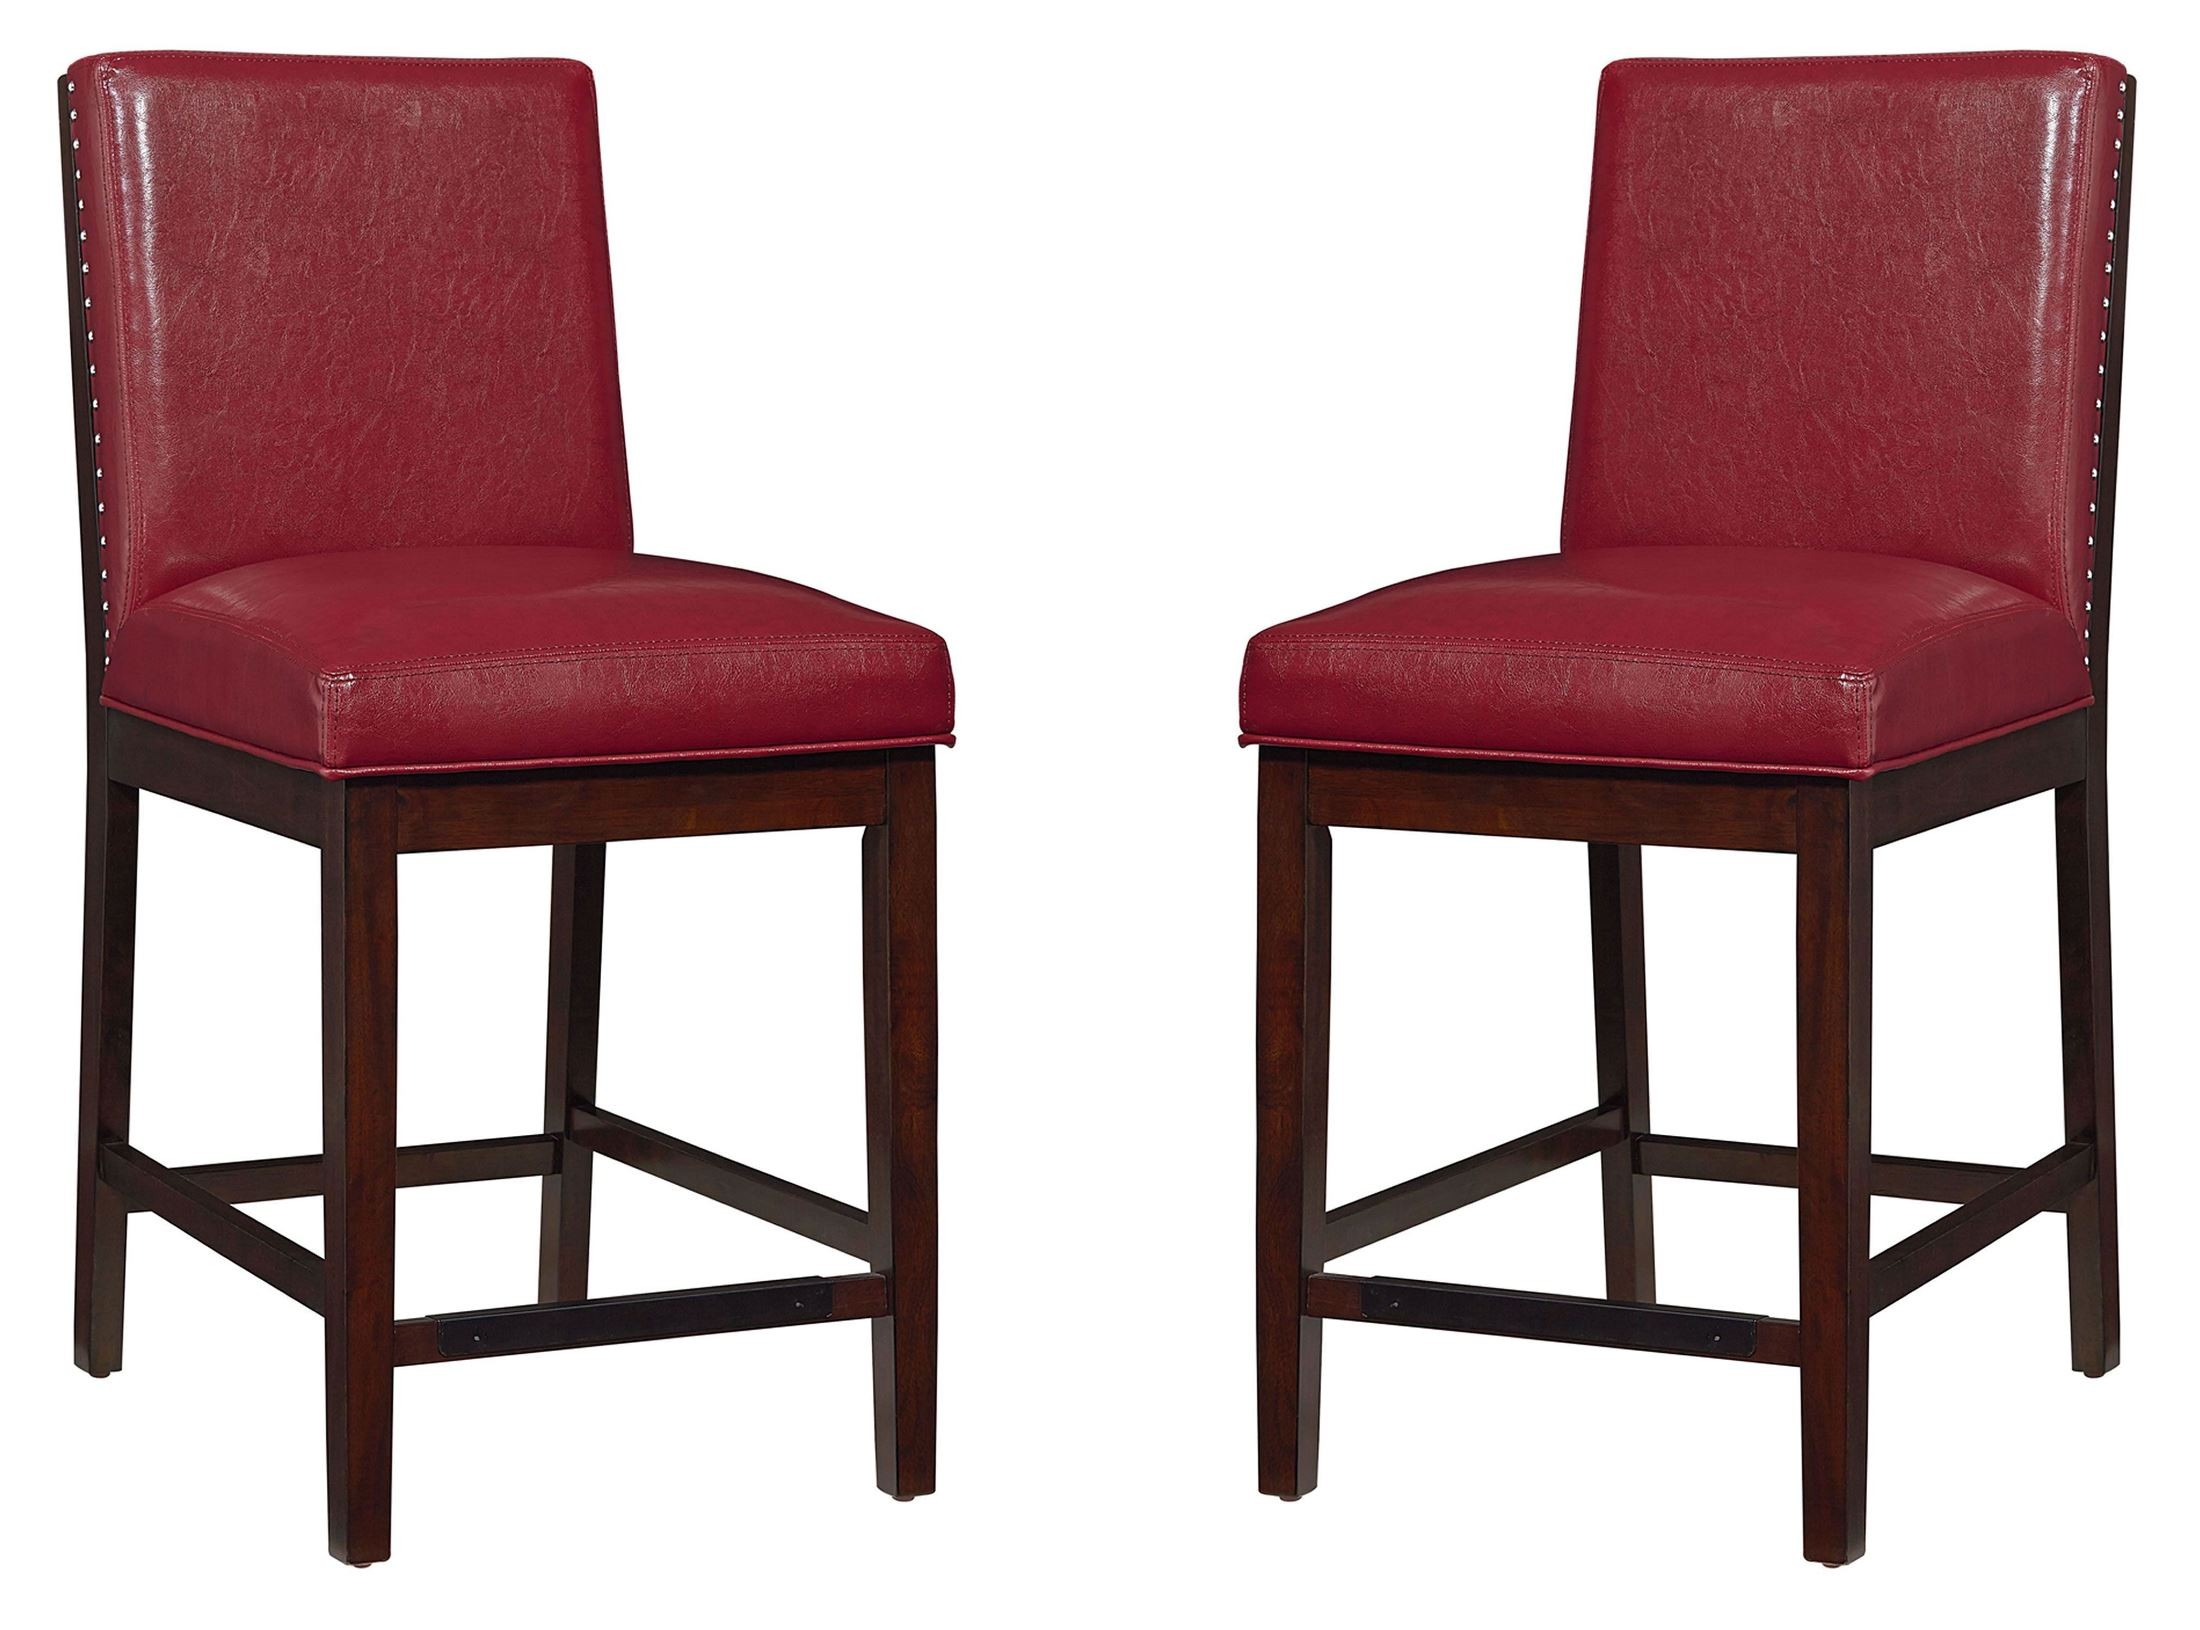 Red Counter Height Chairs Couture Elegance Red Upholstered Counter Height Chair Set